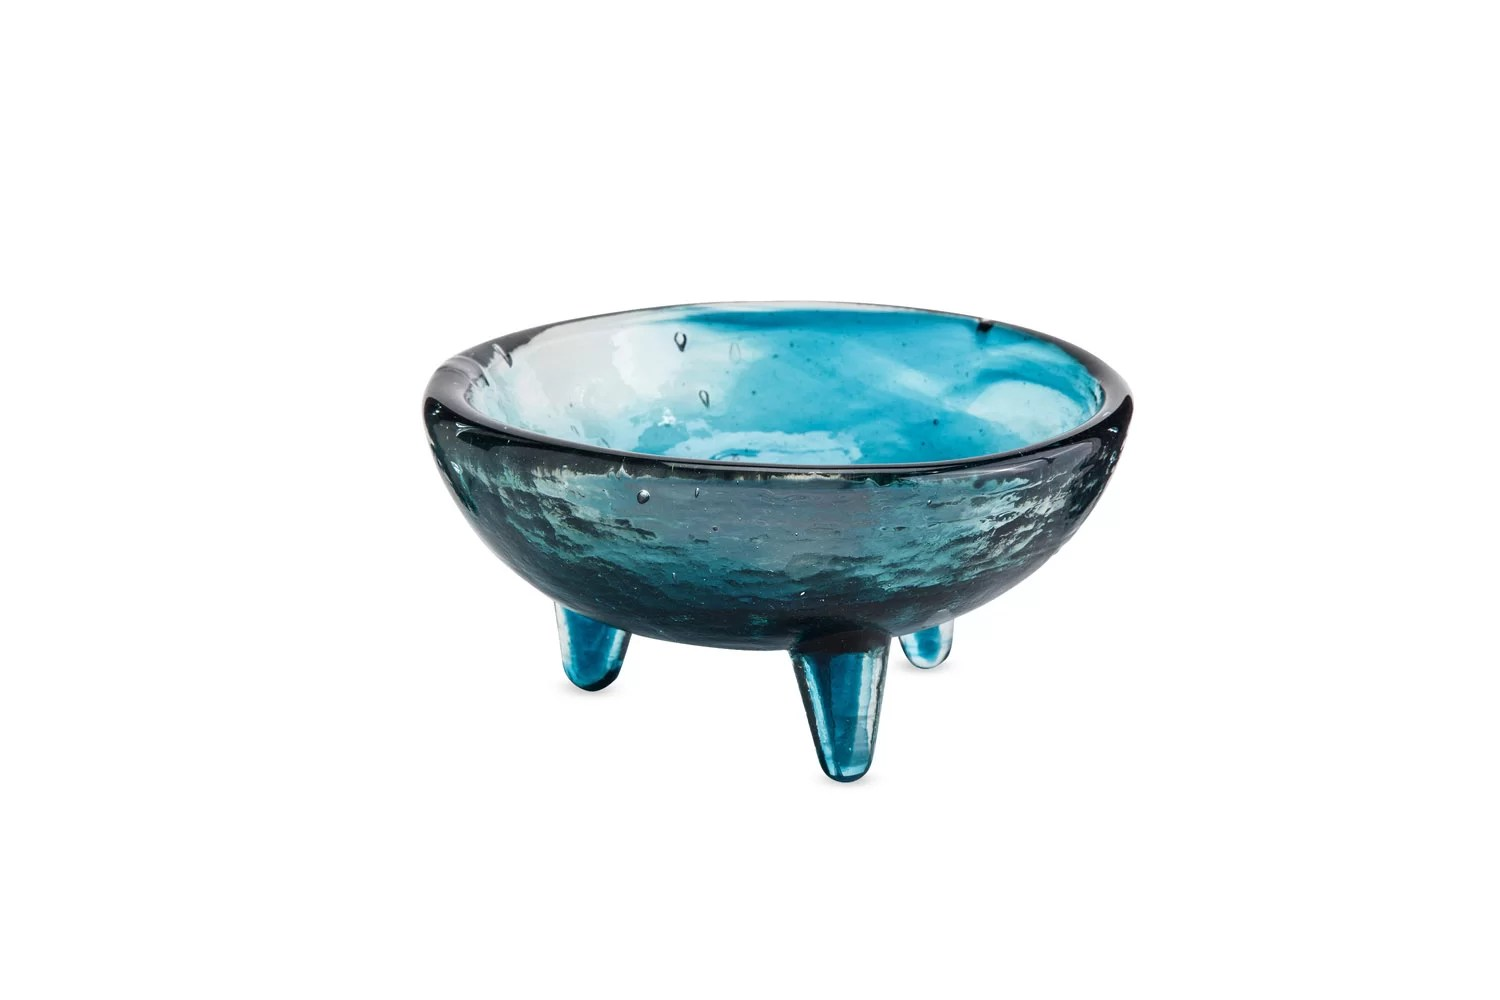 Decorative Glass Bowls Teton Molcajete Recycled Glass Decorative Bowl